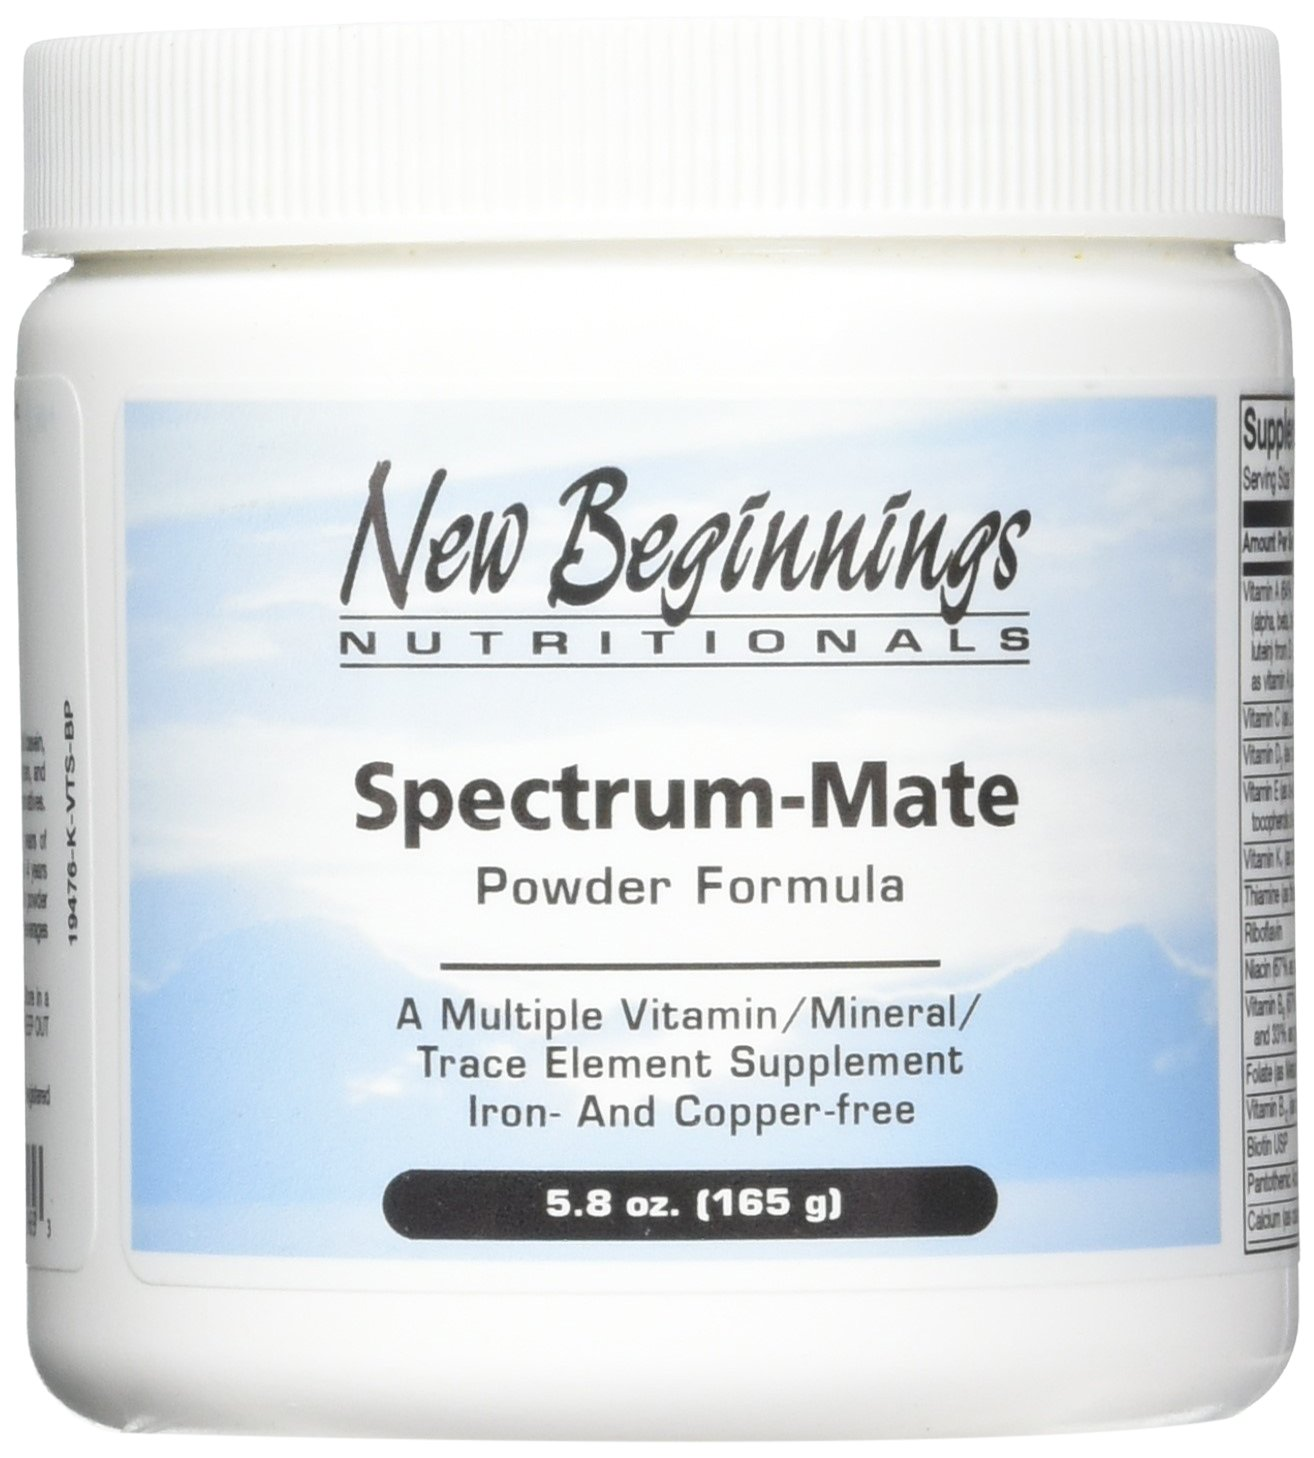 Spectrum-Mate - powder 5.8oz